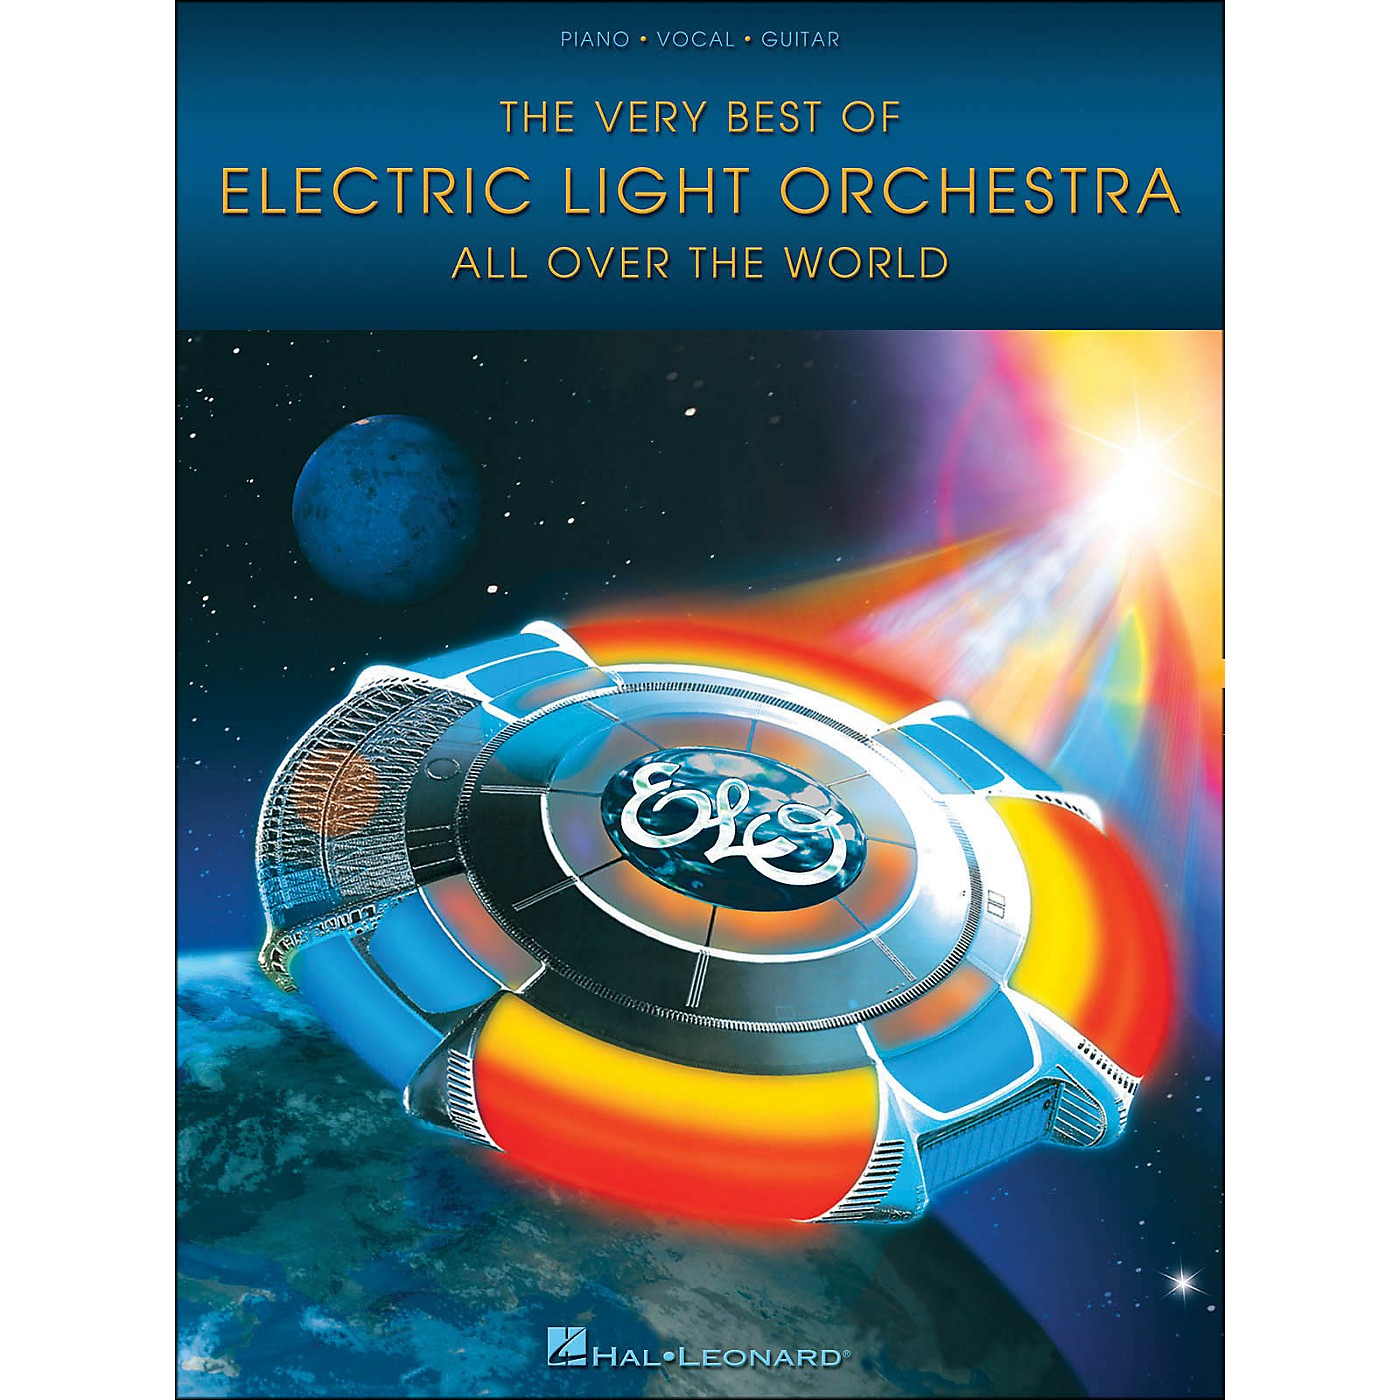 Hal Leonard The Very Best Of Electric Light Orchestra All Over The World arranged for piano, vocal, and guitar (P/V/G) thumbnail